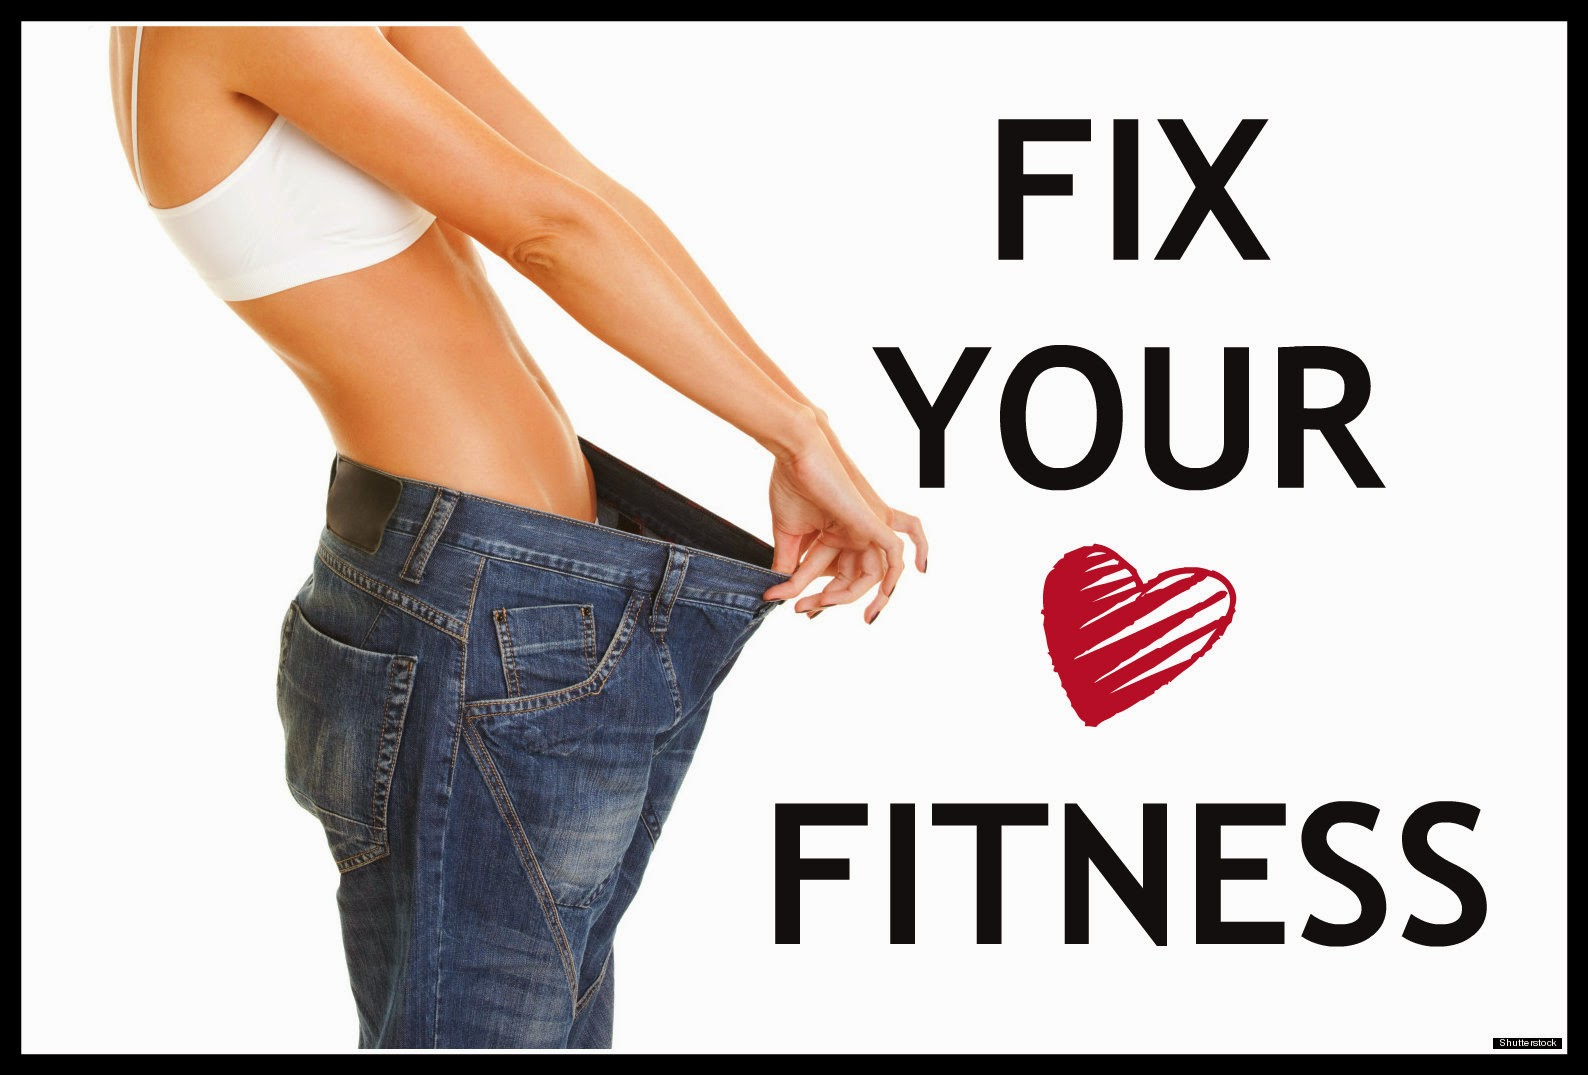 Fix YOUR fitness frustrations